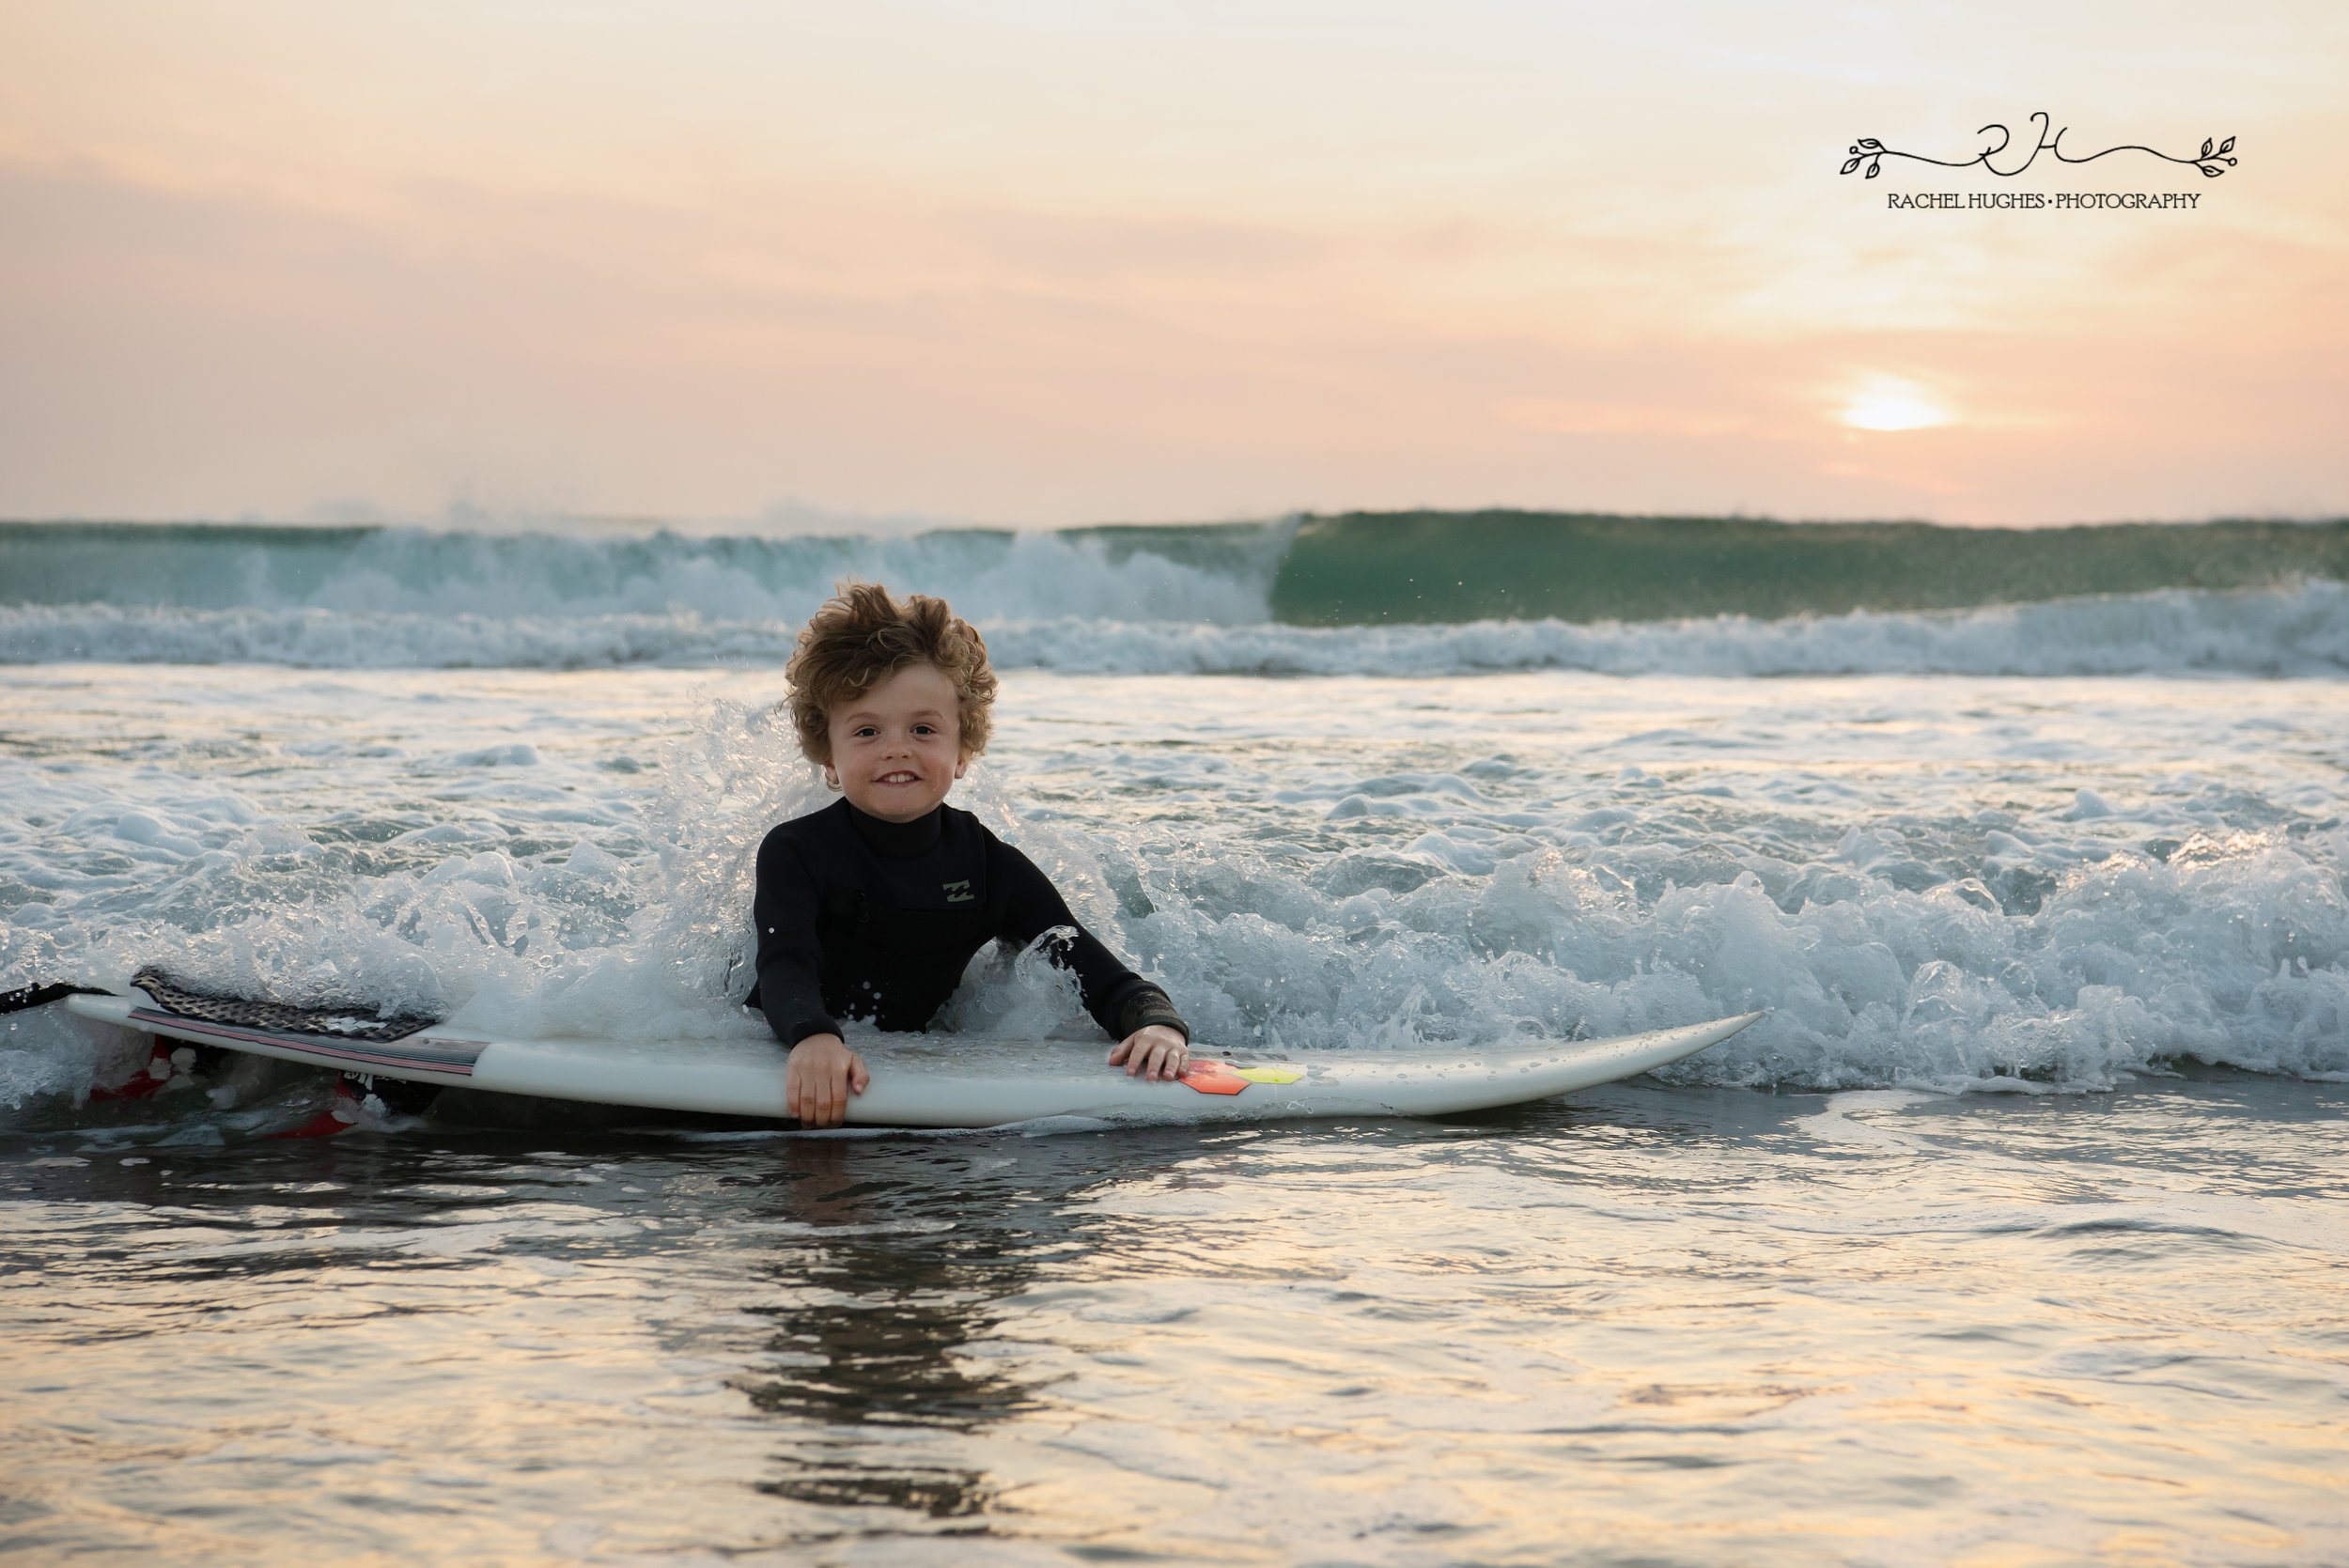 Jersey photographer - boy splashing in waves with board